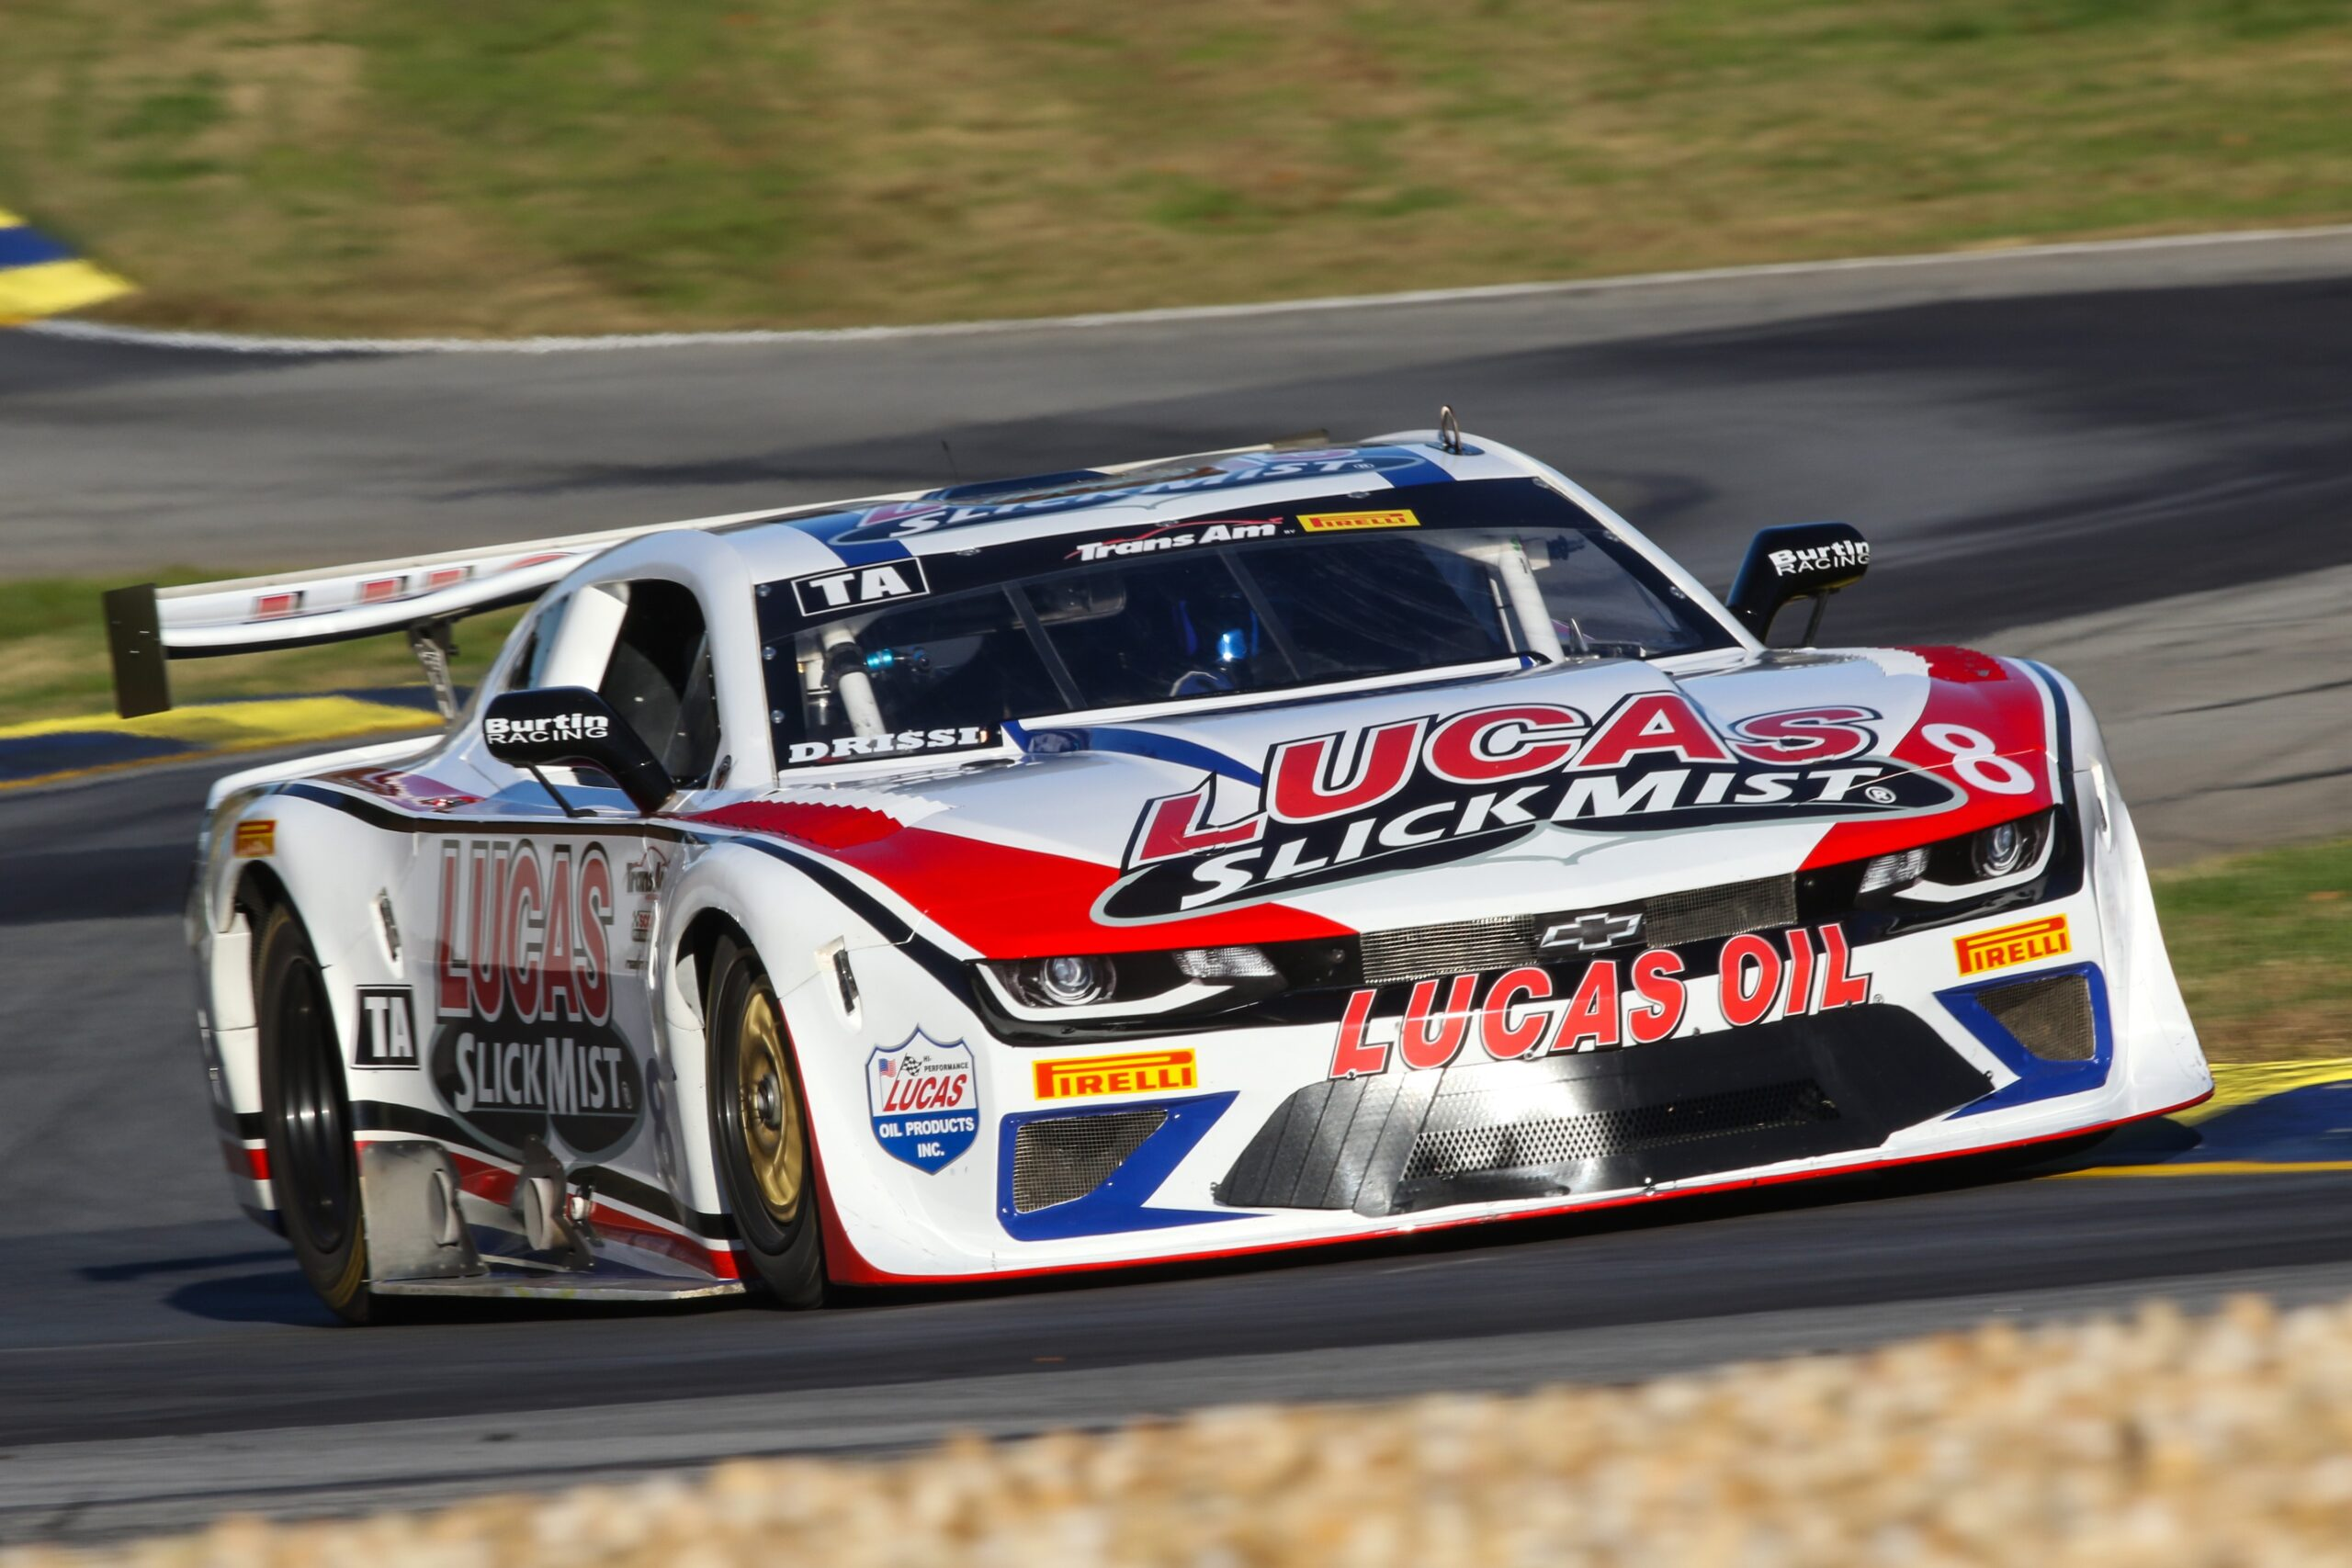 Lucas SlickMist Driver Tomy Drissi Heads To Road Atlanta After Strong Season Start